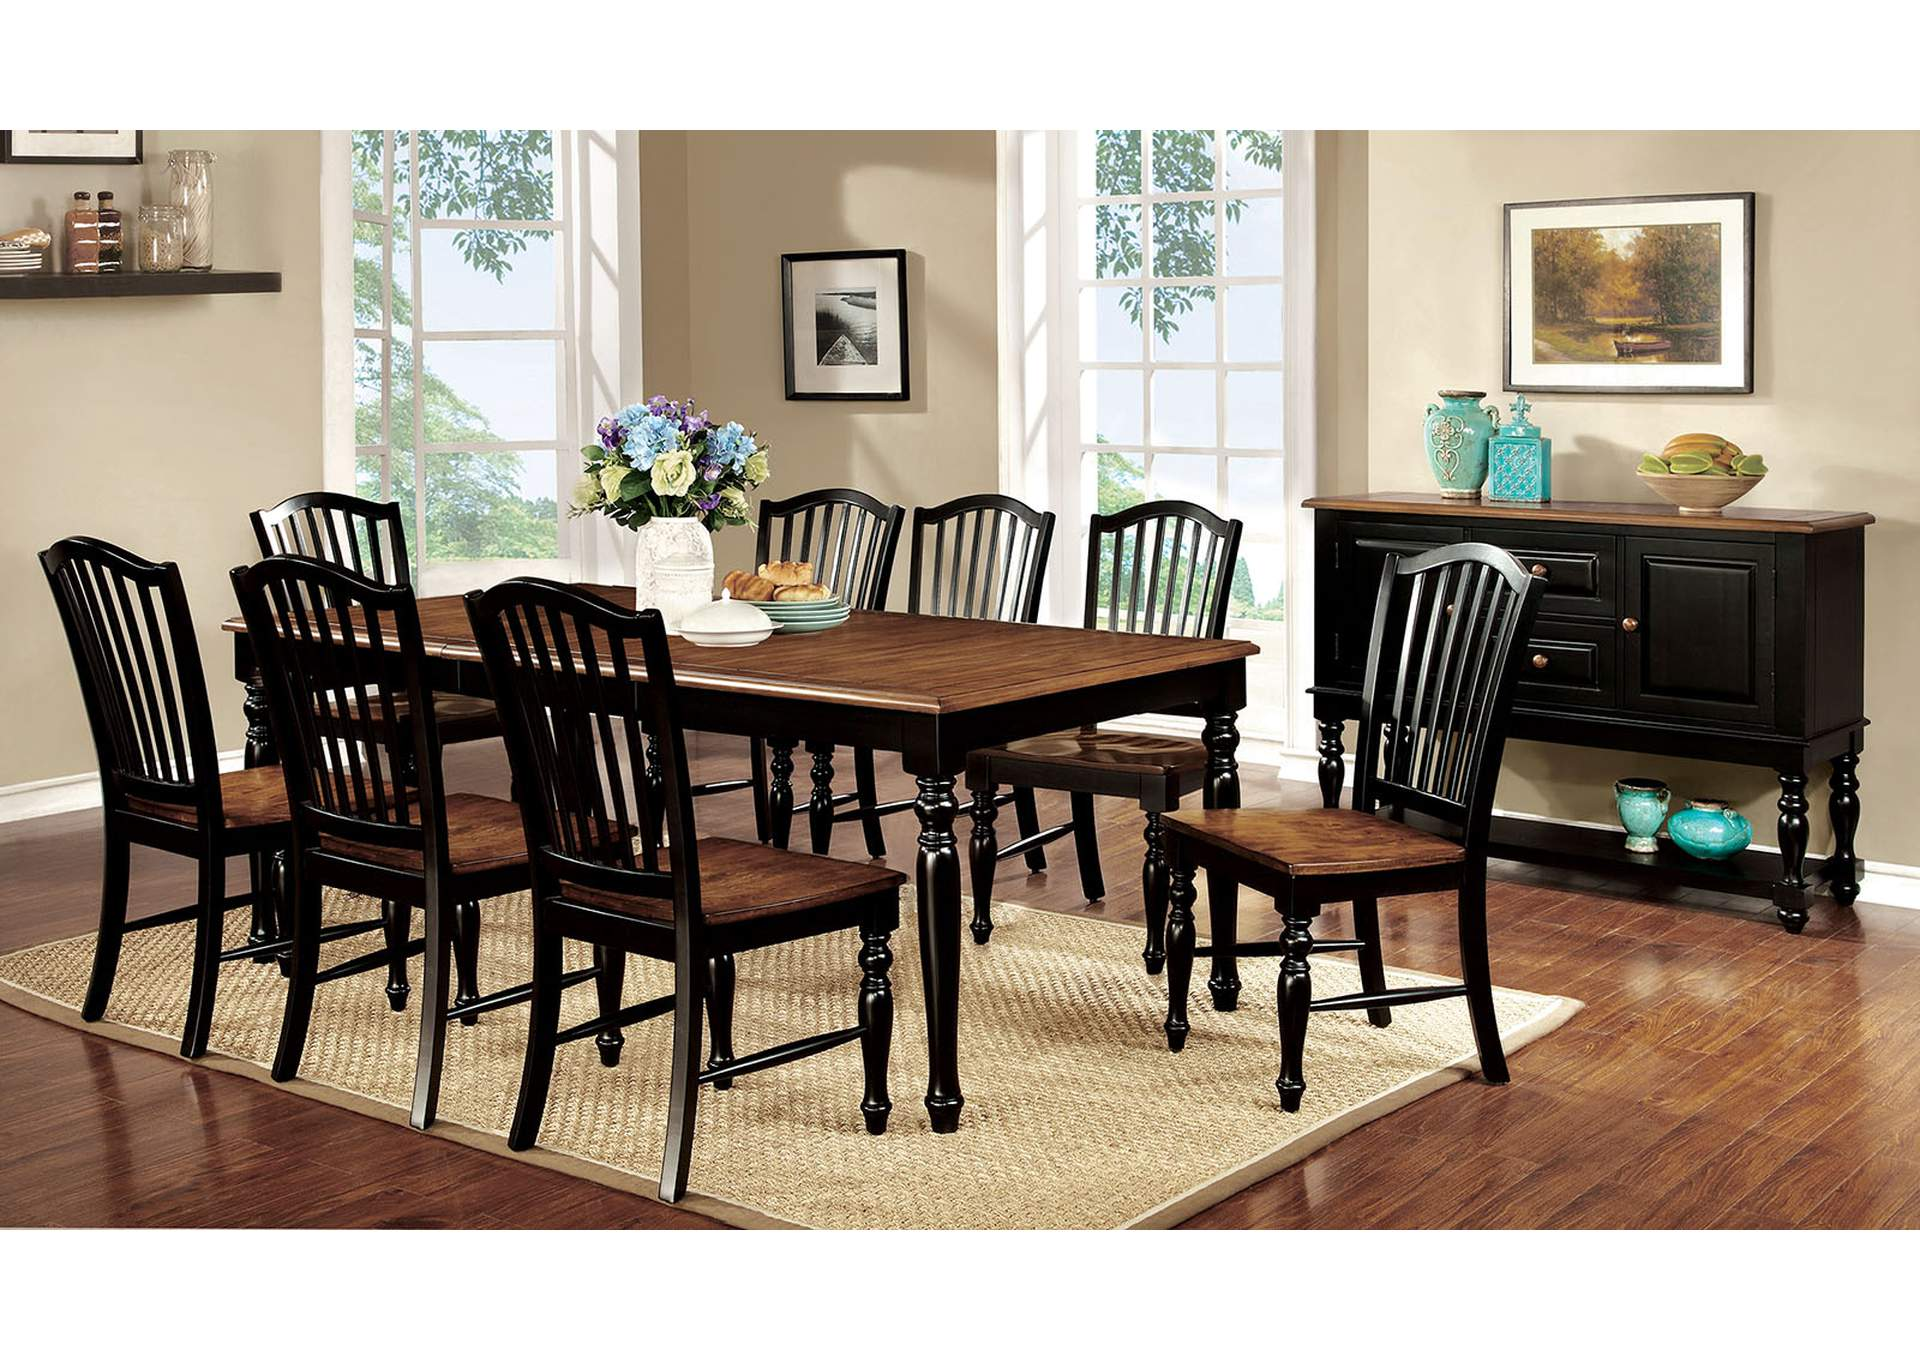 Mayville Black/Antique Oak Extension Dining Table w/8 Side Chair,Furniture of America